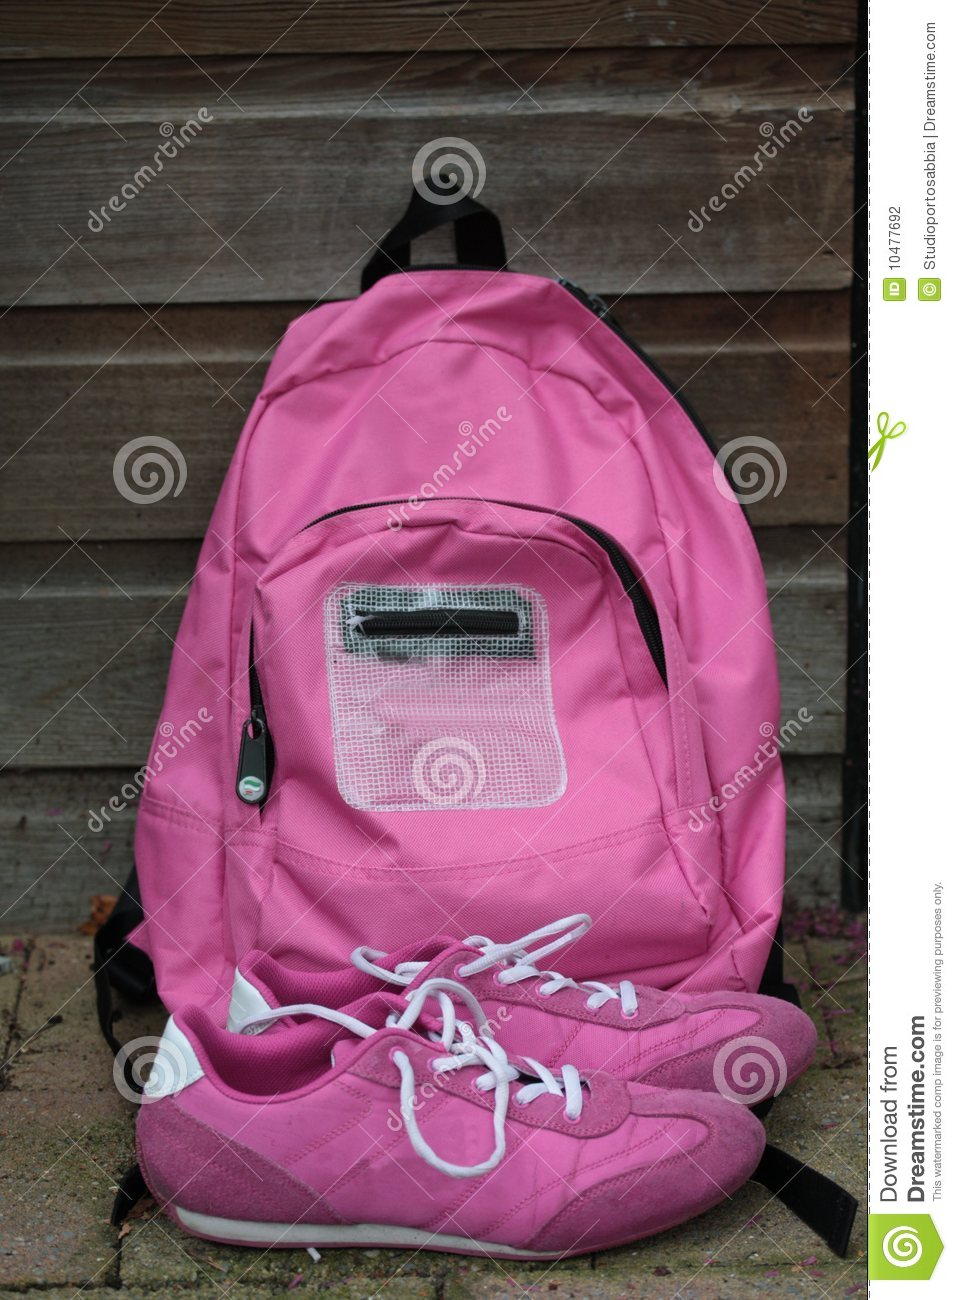 Backpack and sneekers